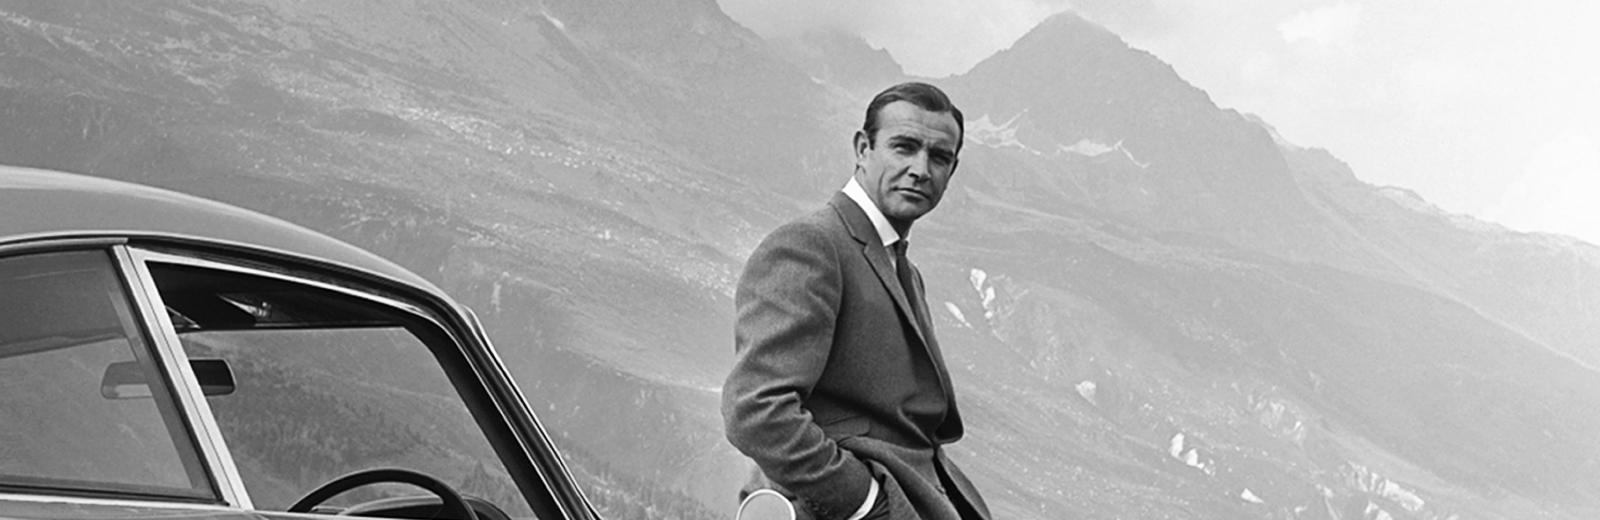 Waiting at the Furka Pass: James Bond aka 007 on his quest to hunt down Goldfinger in his Aston Martin DB5 in Switzerland.